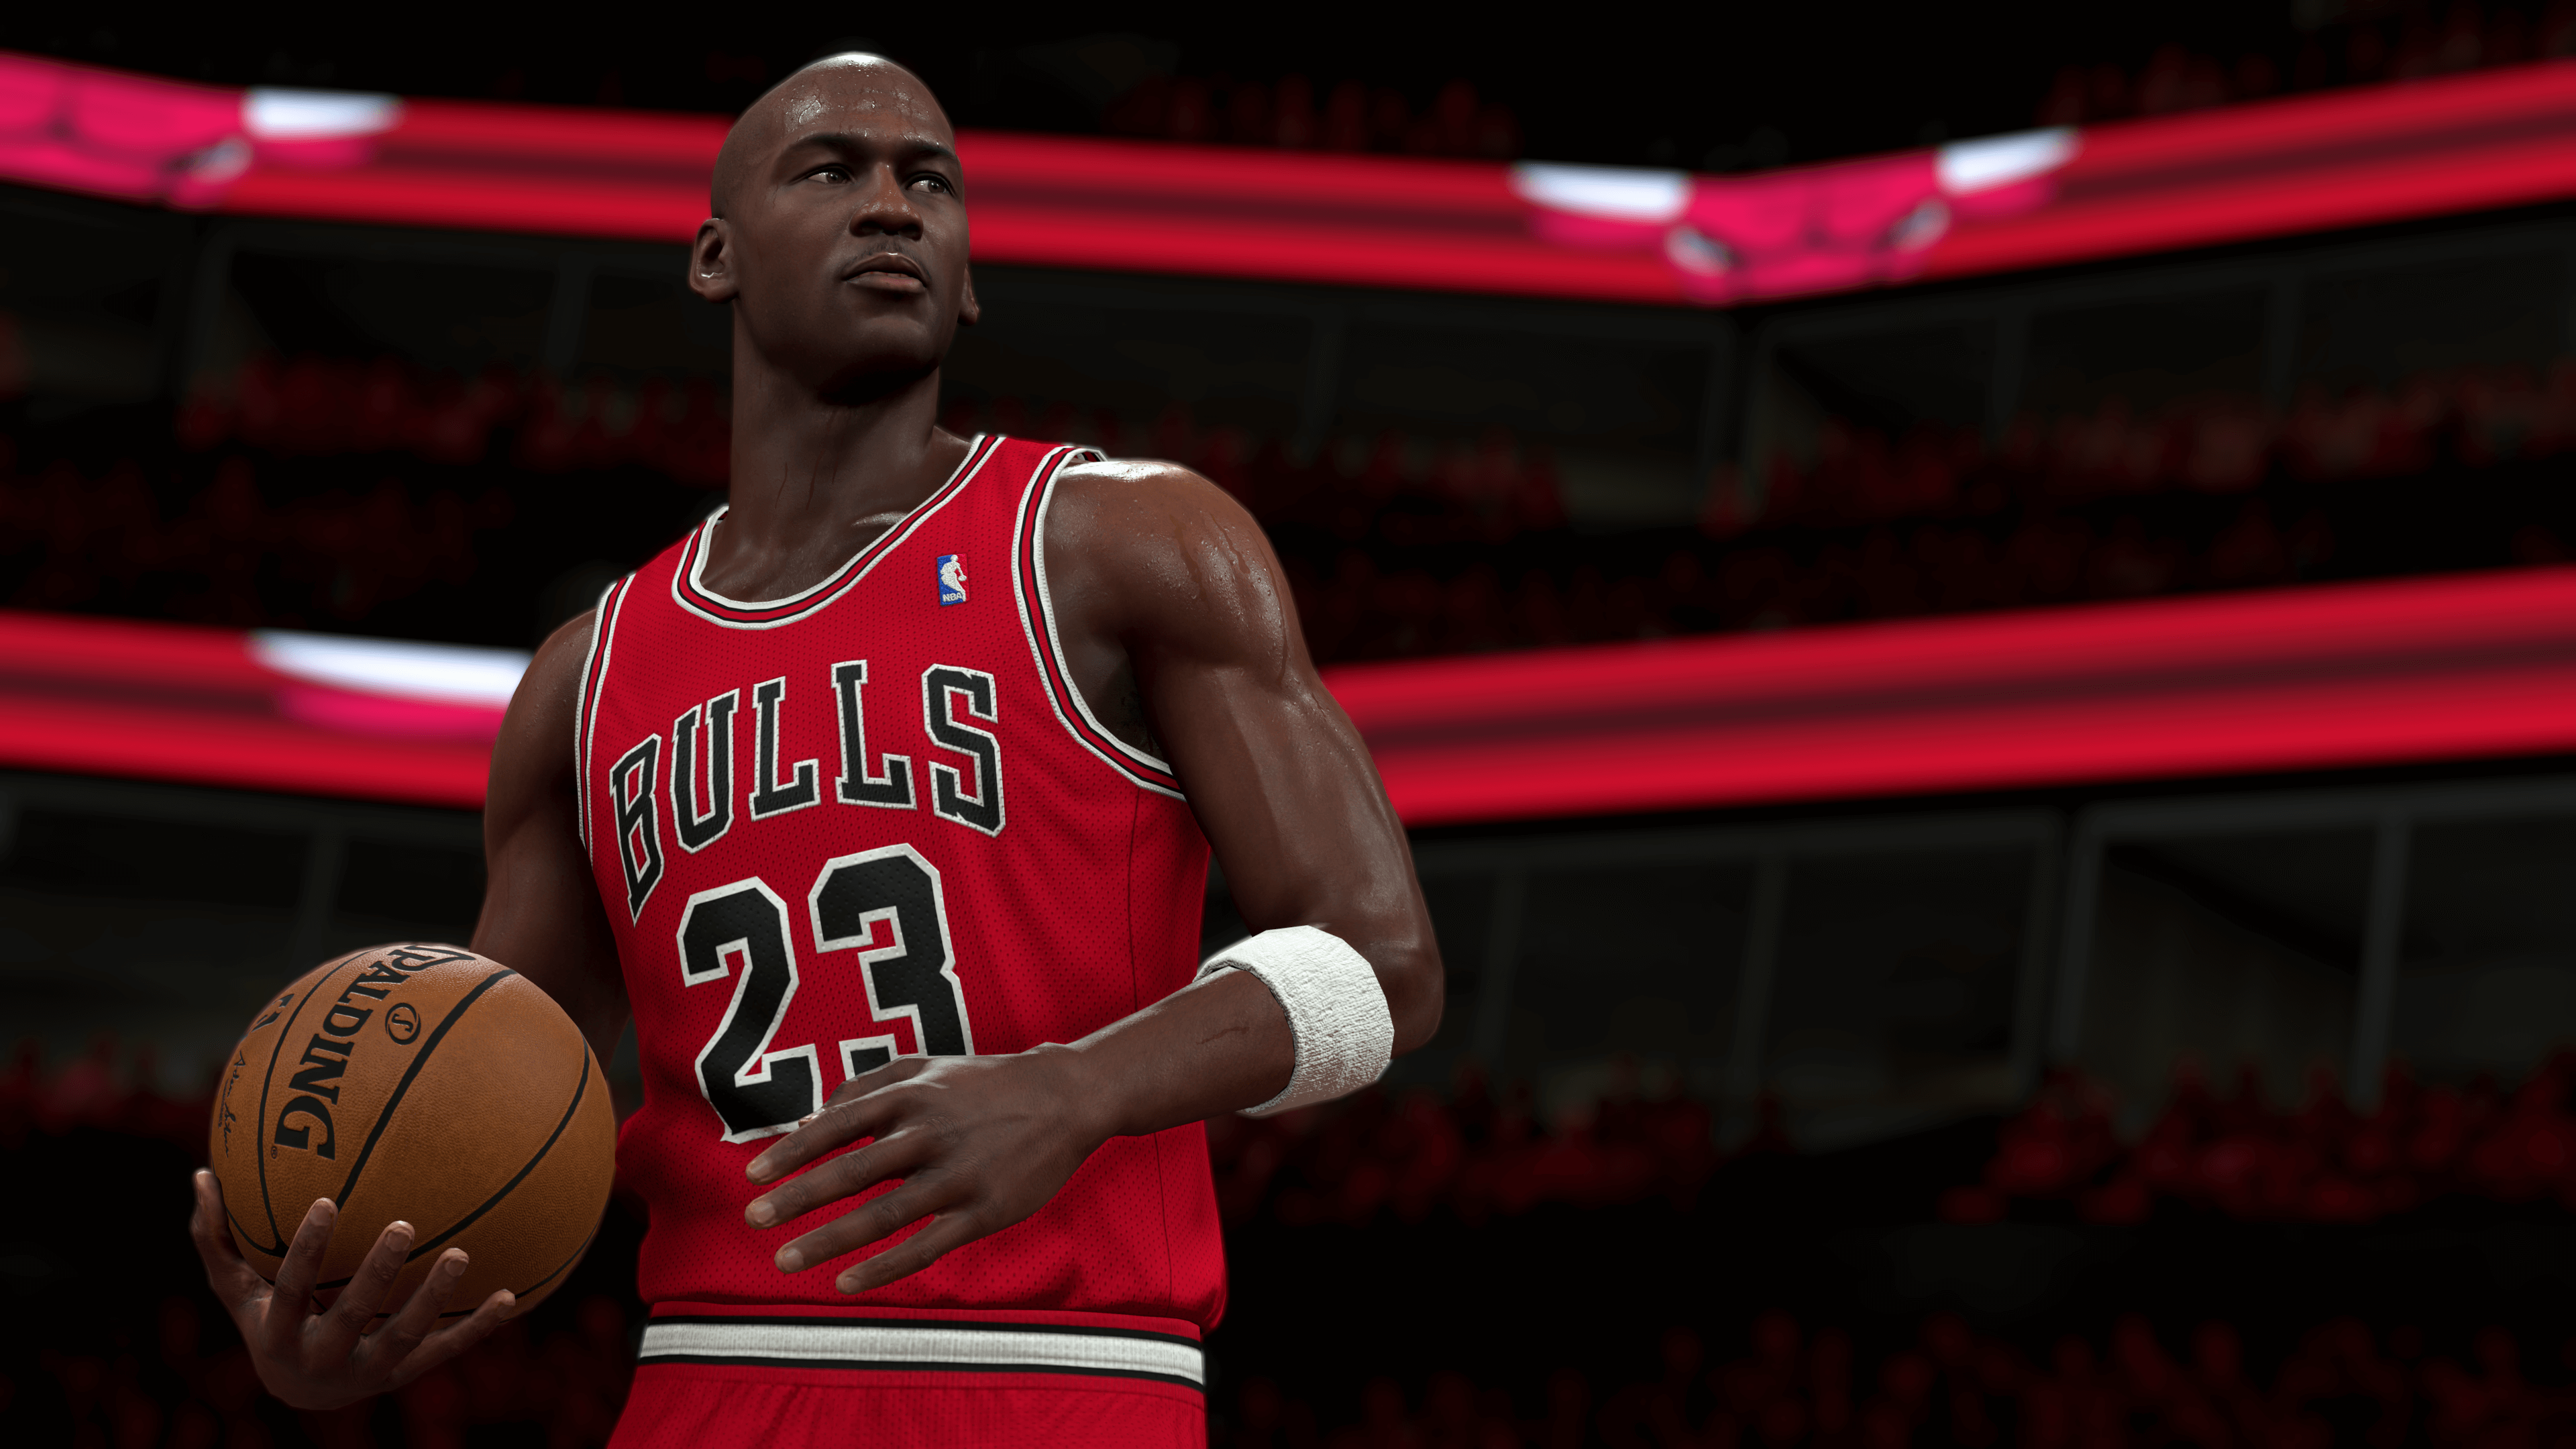 Here S How To Get Nba 2k21 For Free This Week On Pc Just In Time For Playoff Season In 2021 Basketball Video Games Sports Video Game Nba